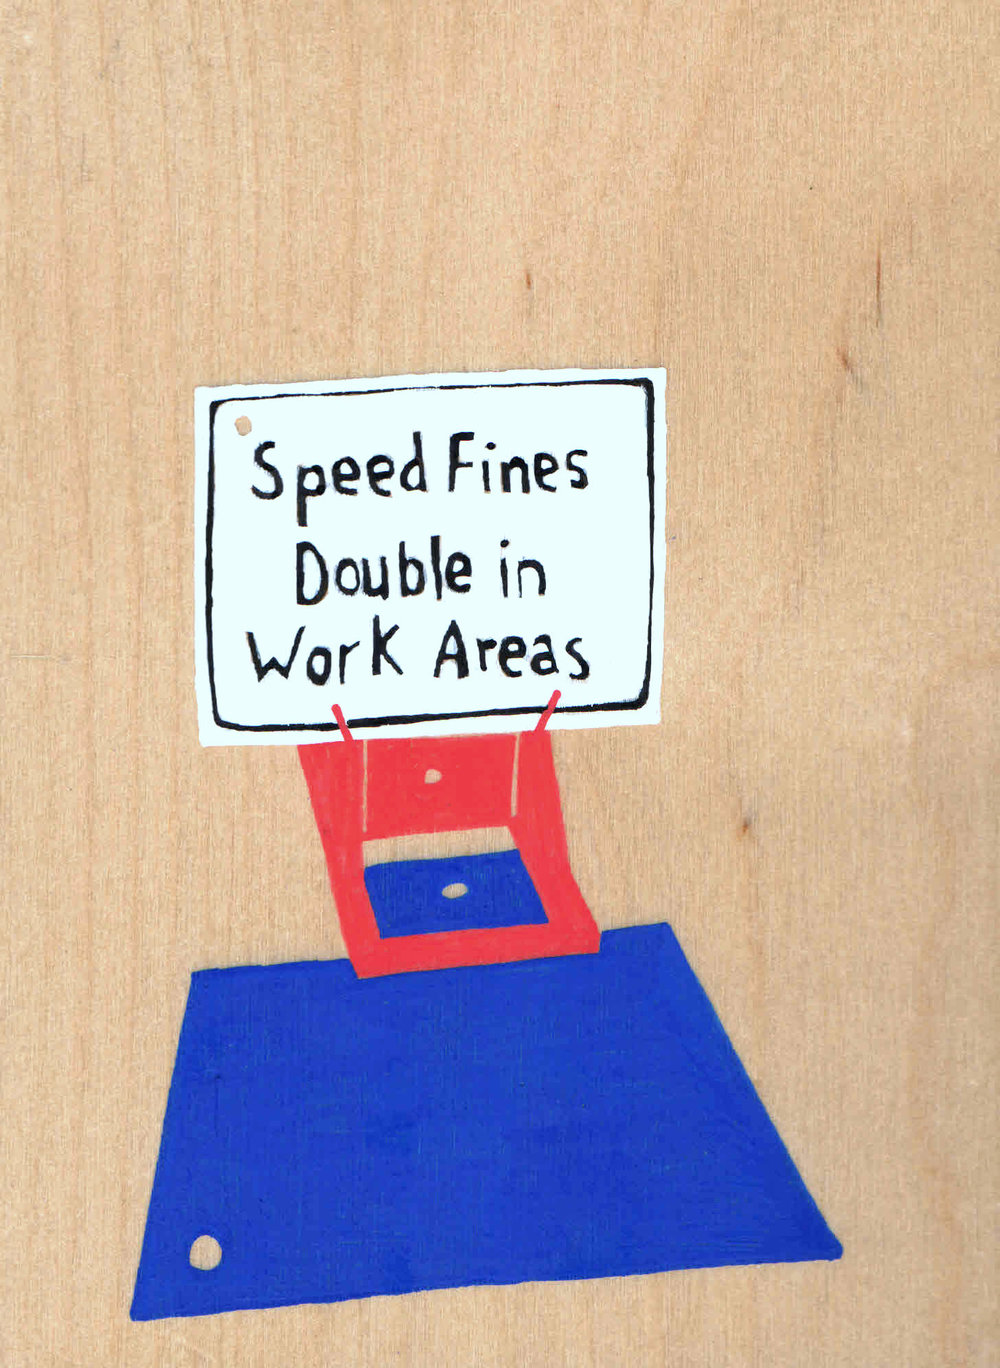 Double in Work Areas